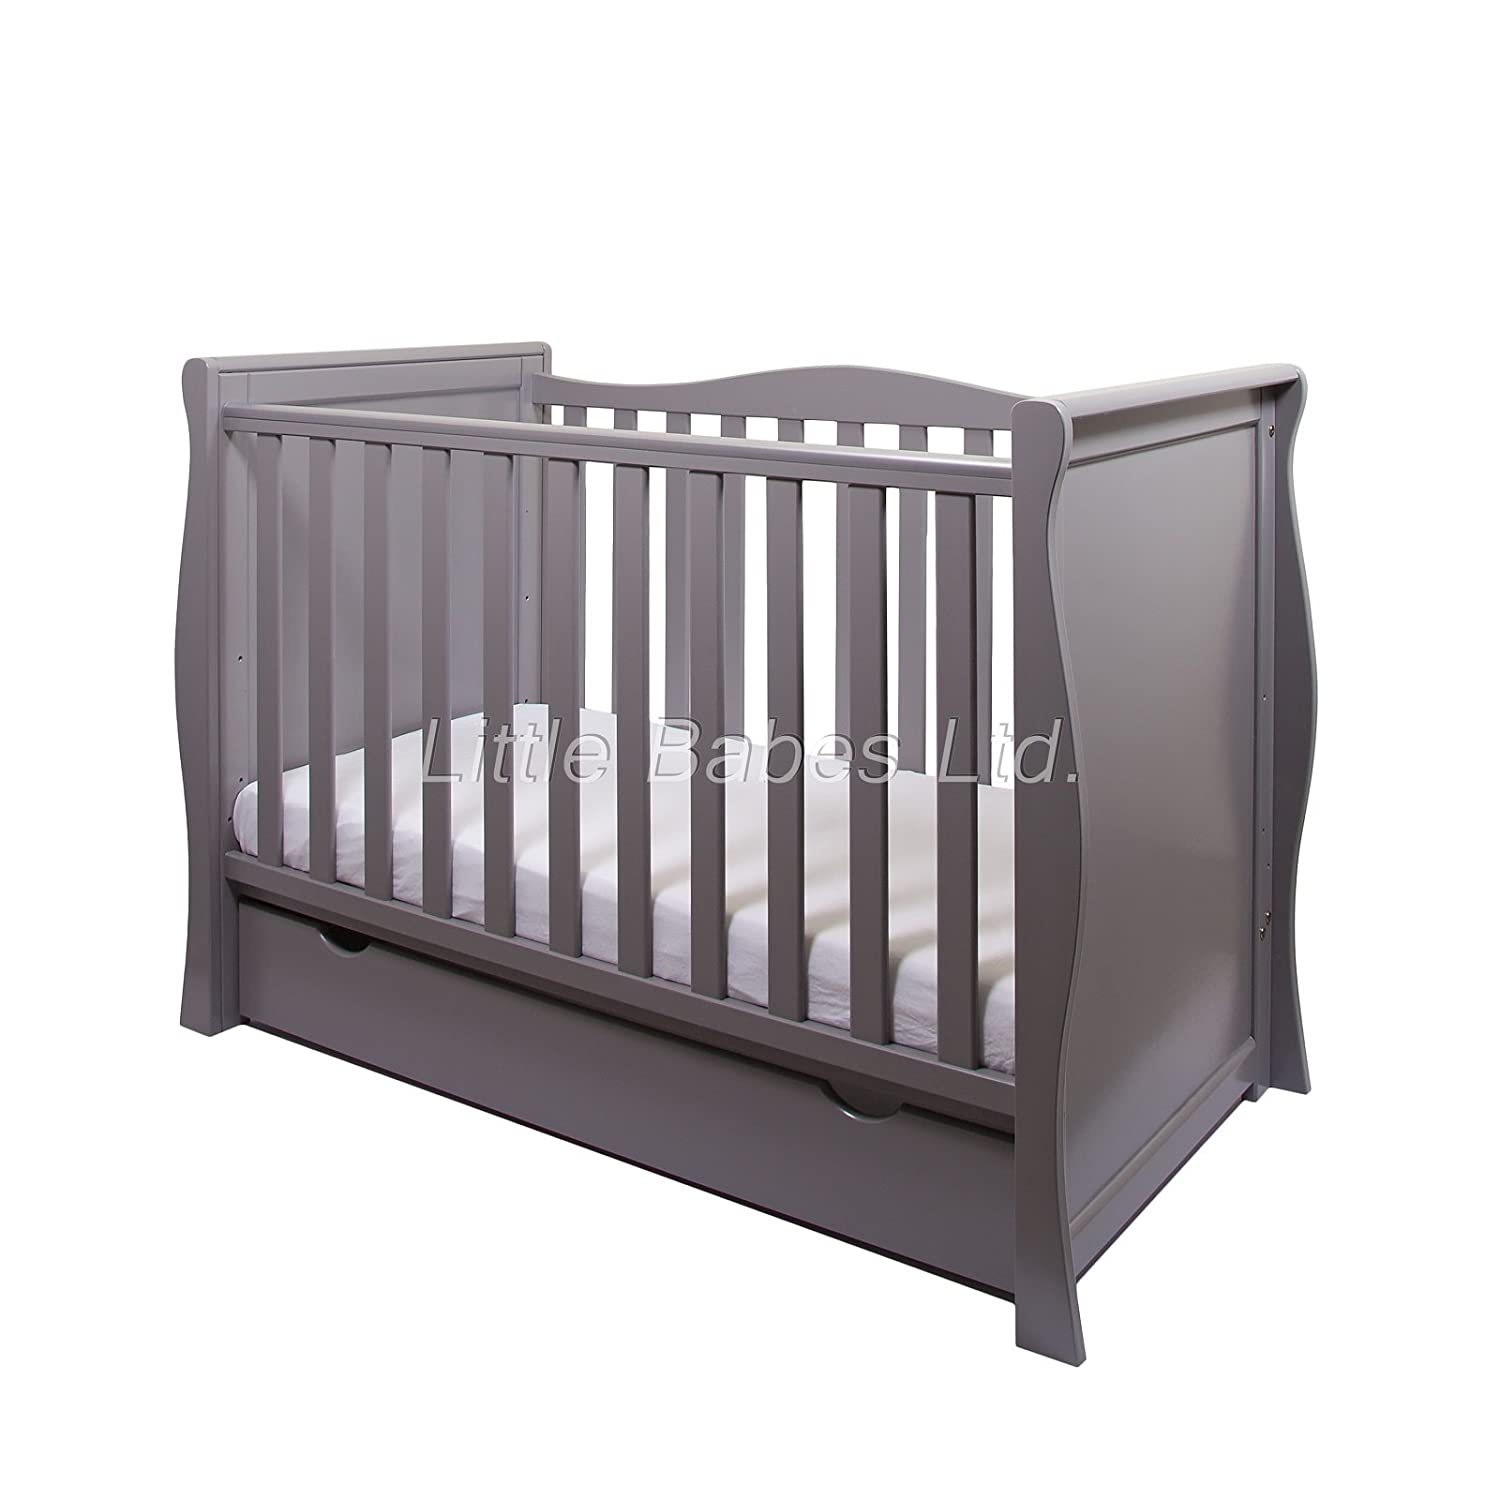 NEW PINEWOOD GREY SLEIGH MINI COT BED & DRAWER ONLY LITTLE BABES LTD grey sleigh mini cot bed only